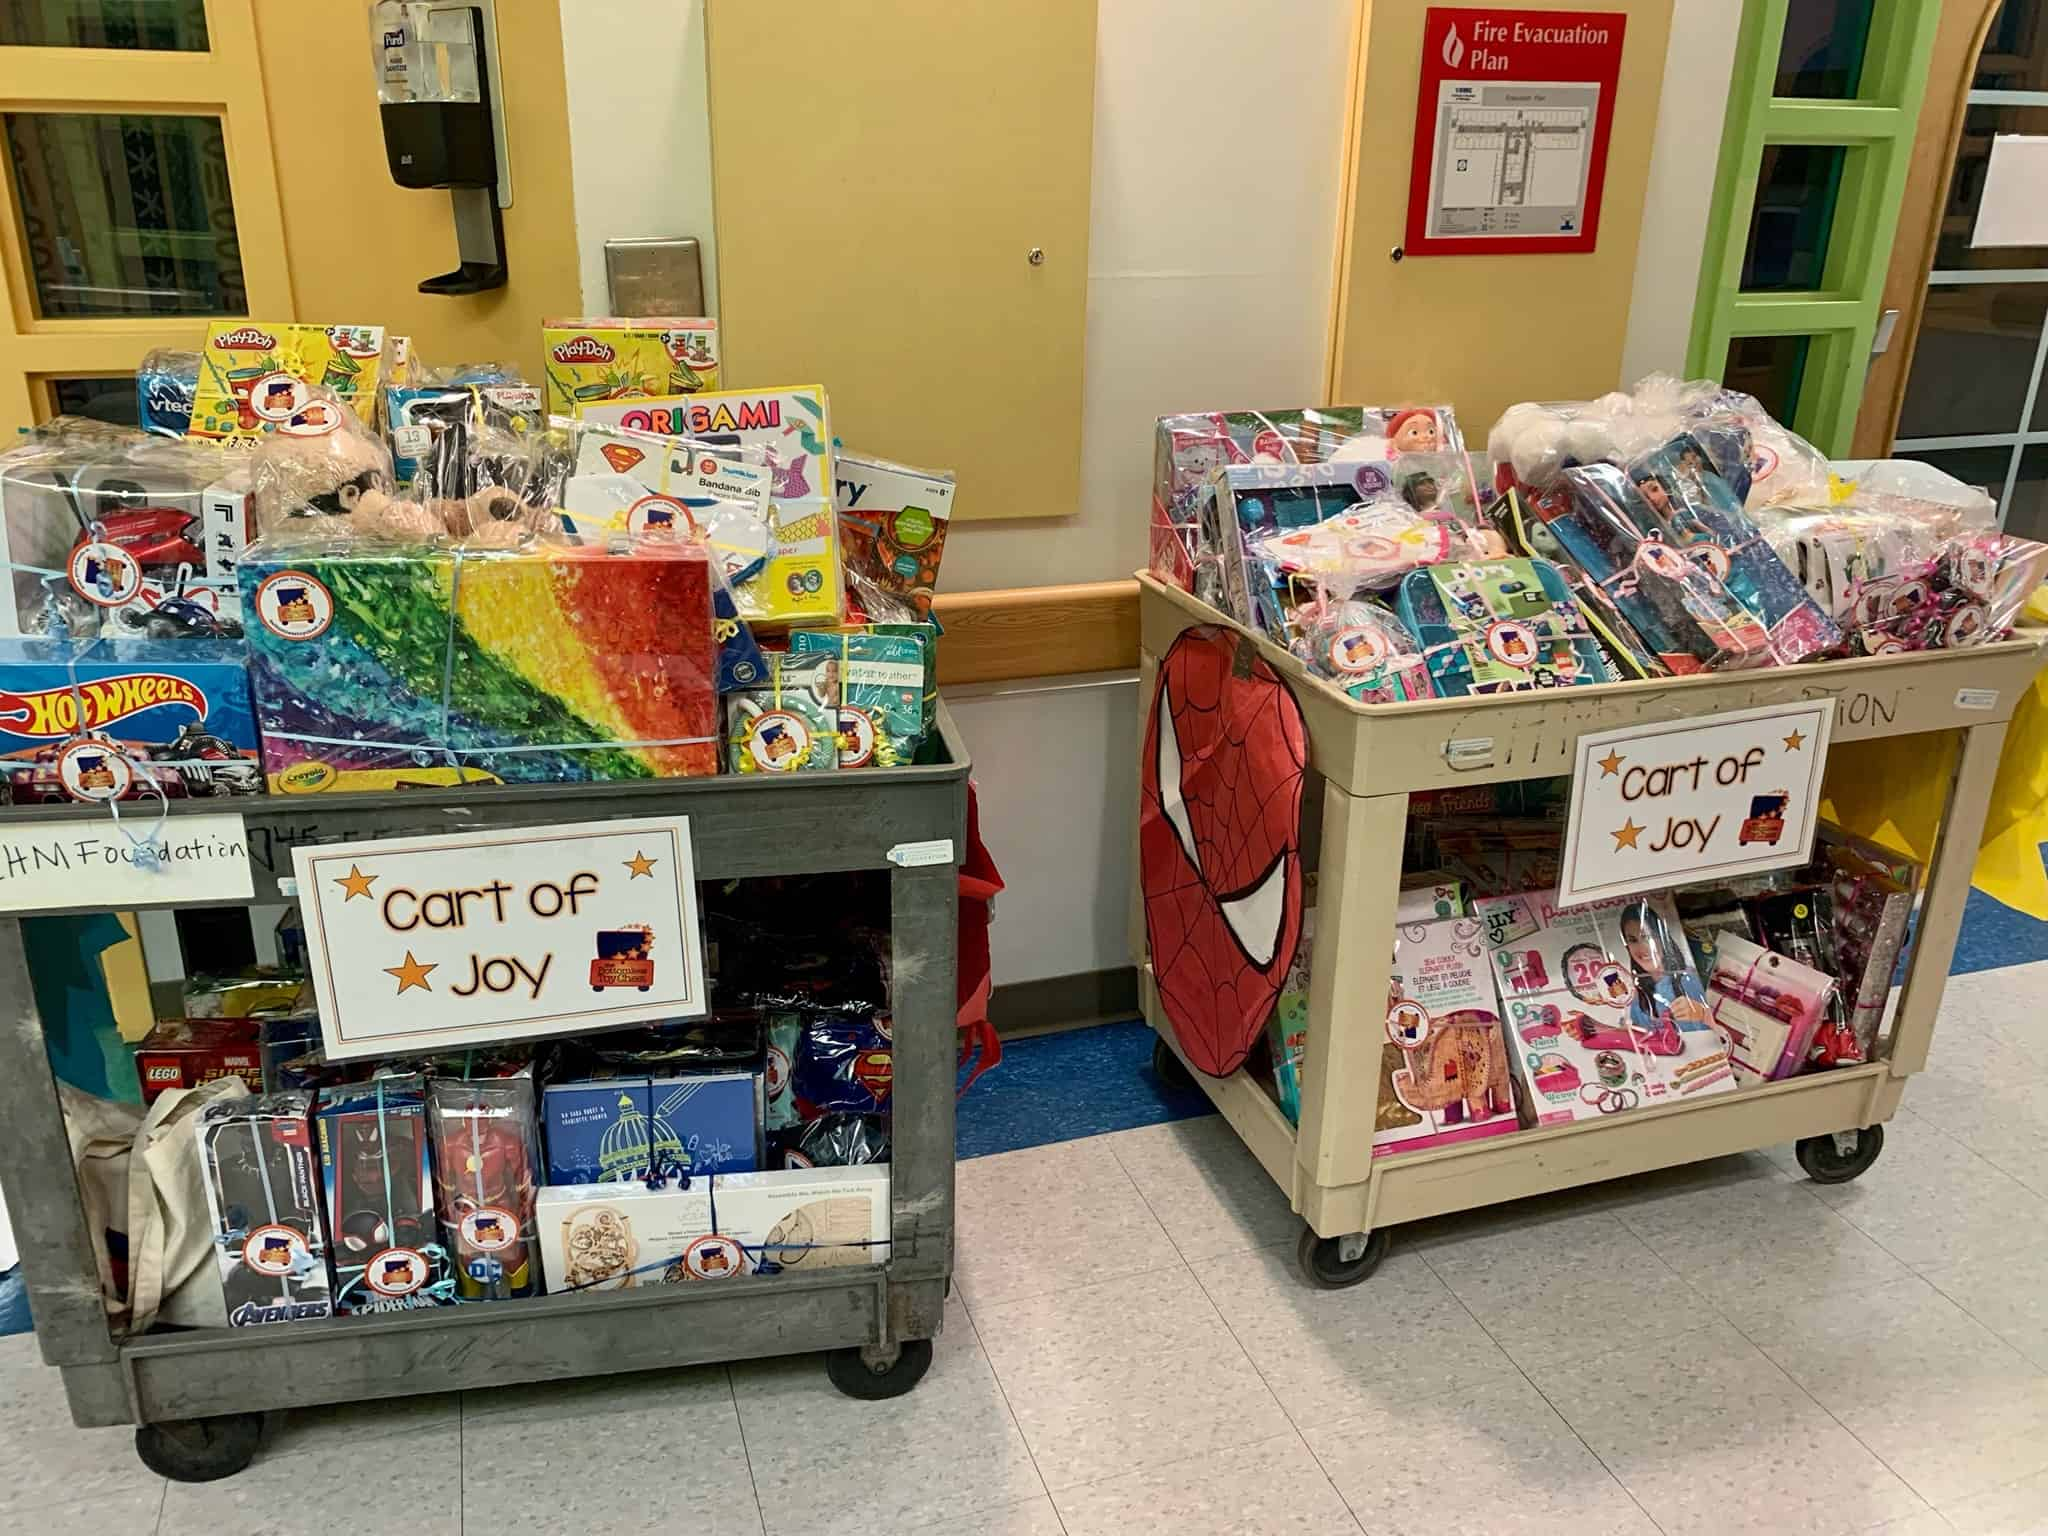 Two carts full of gifts and toys in a hospital hallway.